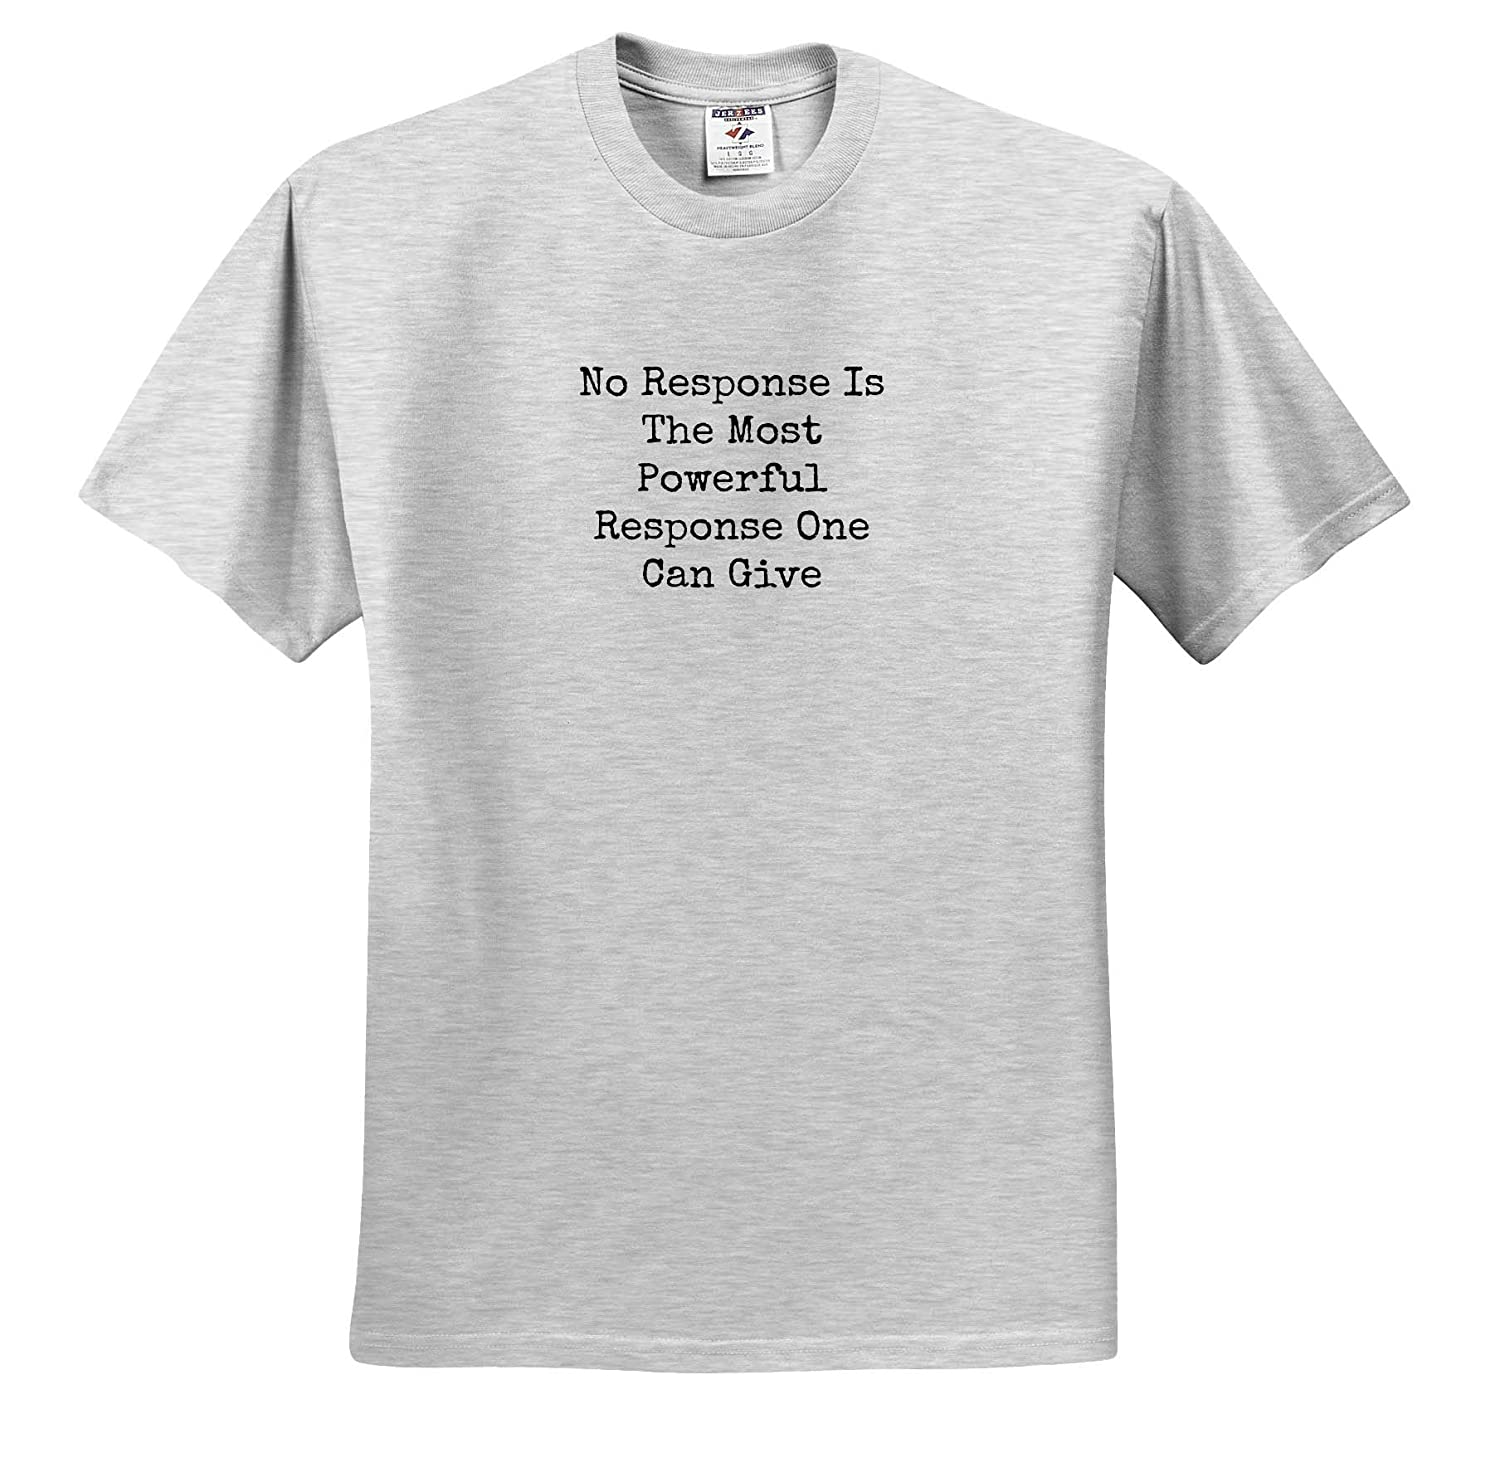 Image of No Response is The Most Powerful Response 3dRose Carrie Merchant Quote ts/_315414 Adult T-Shirt XL